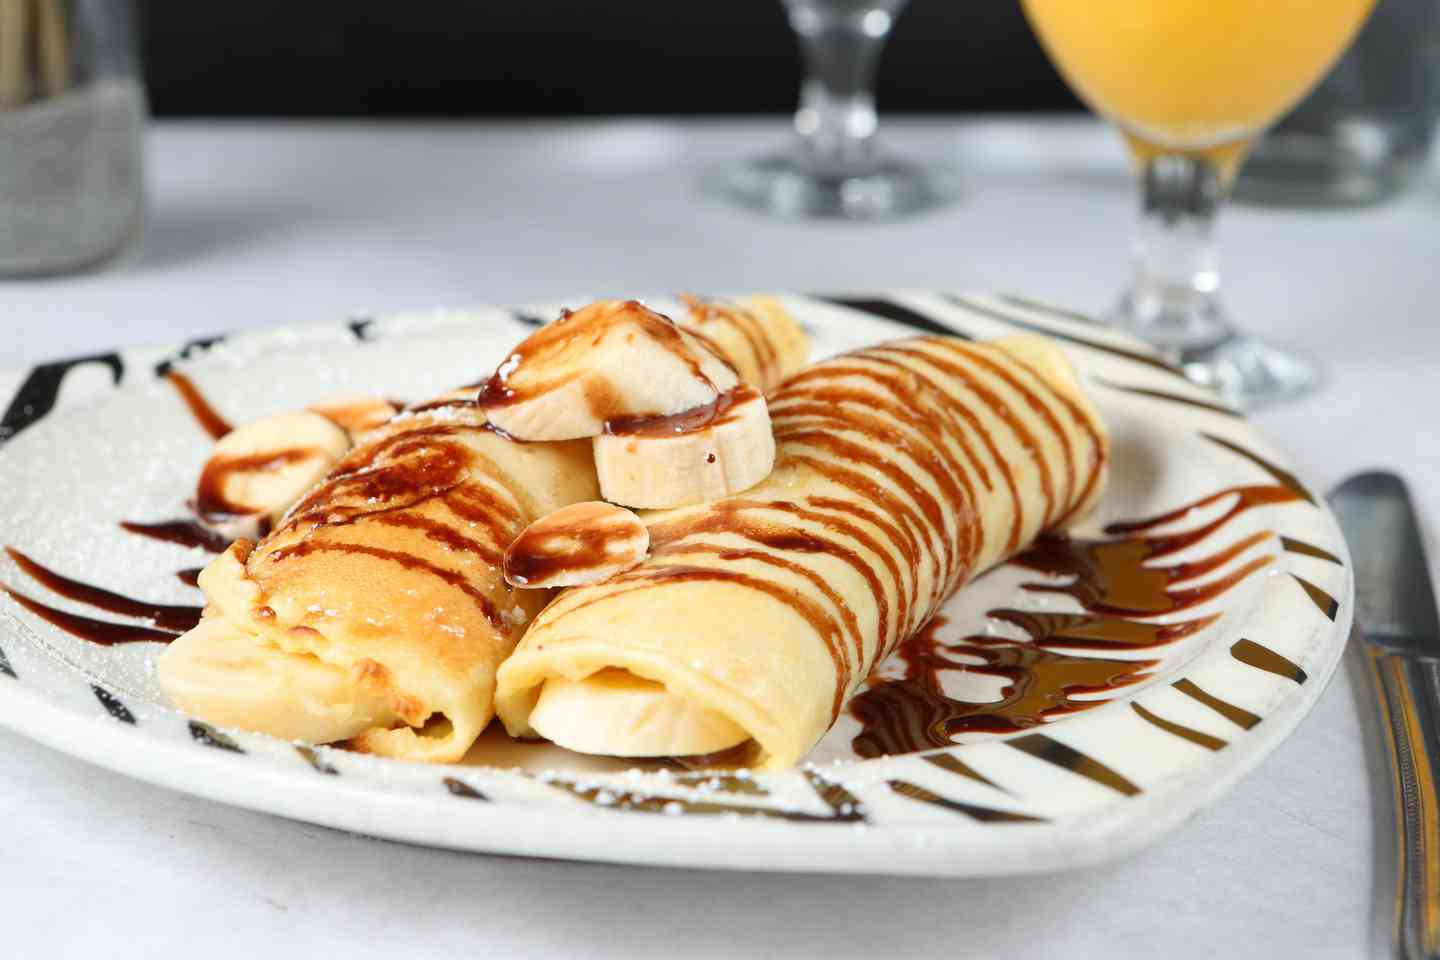 Chocolate & Banana Crepes